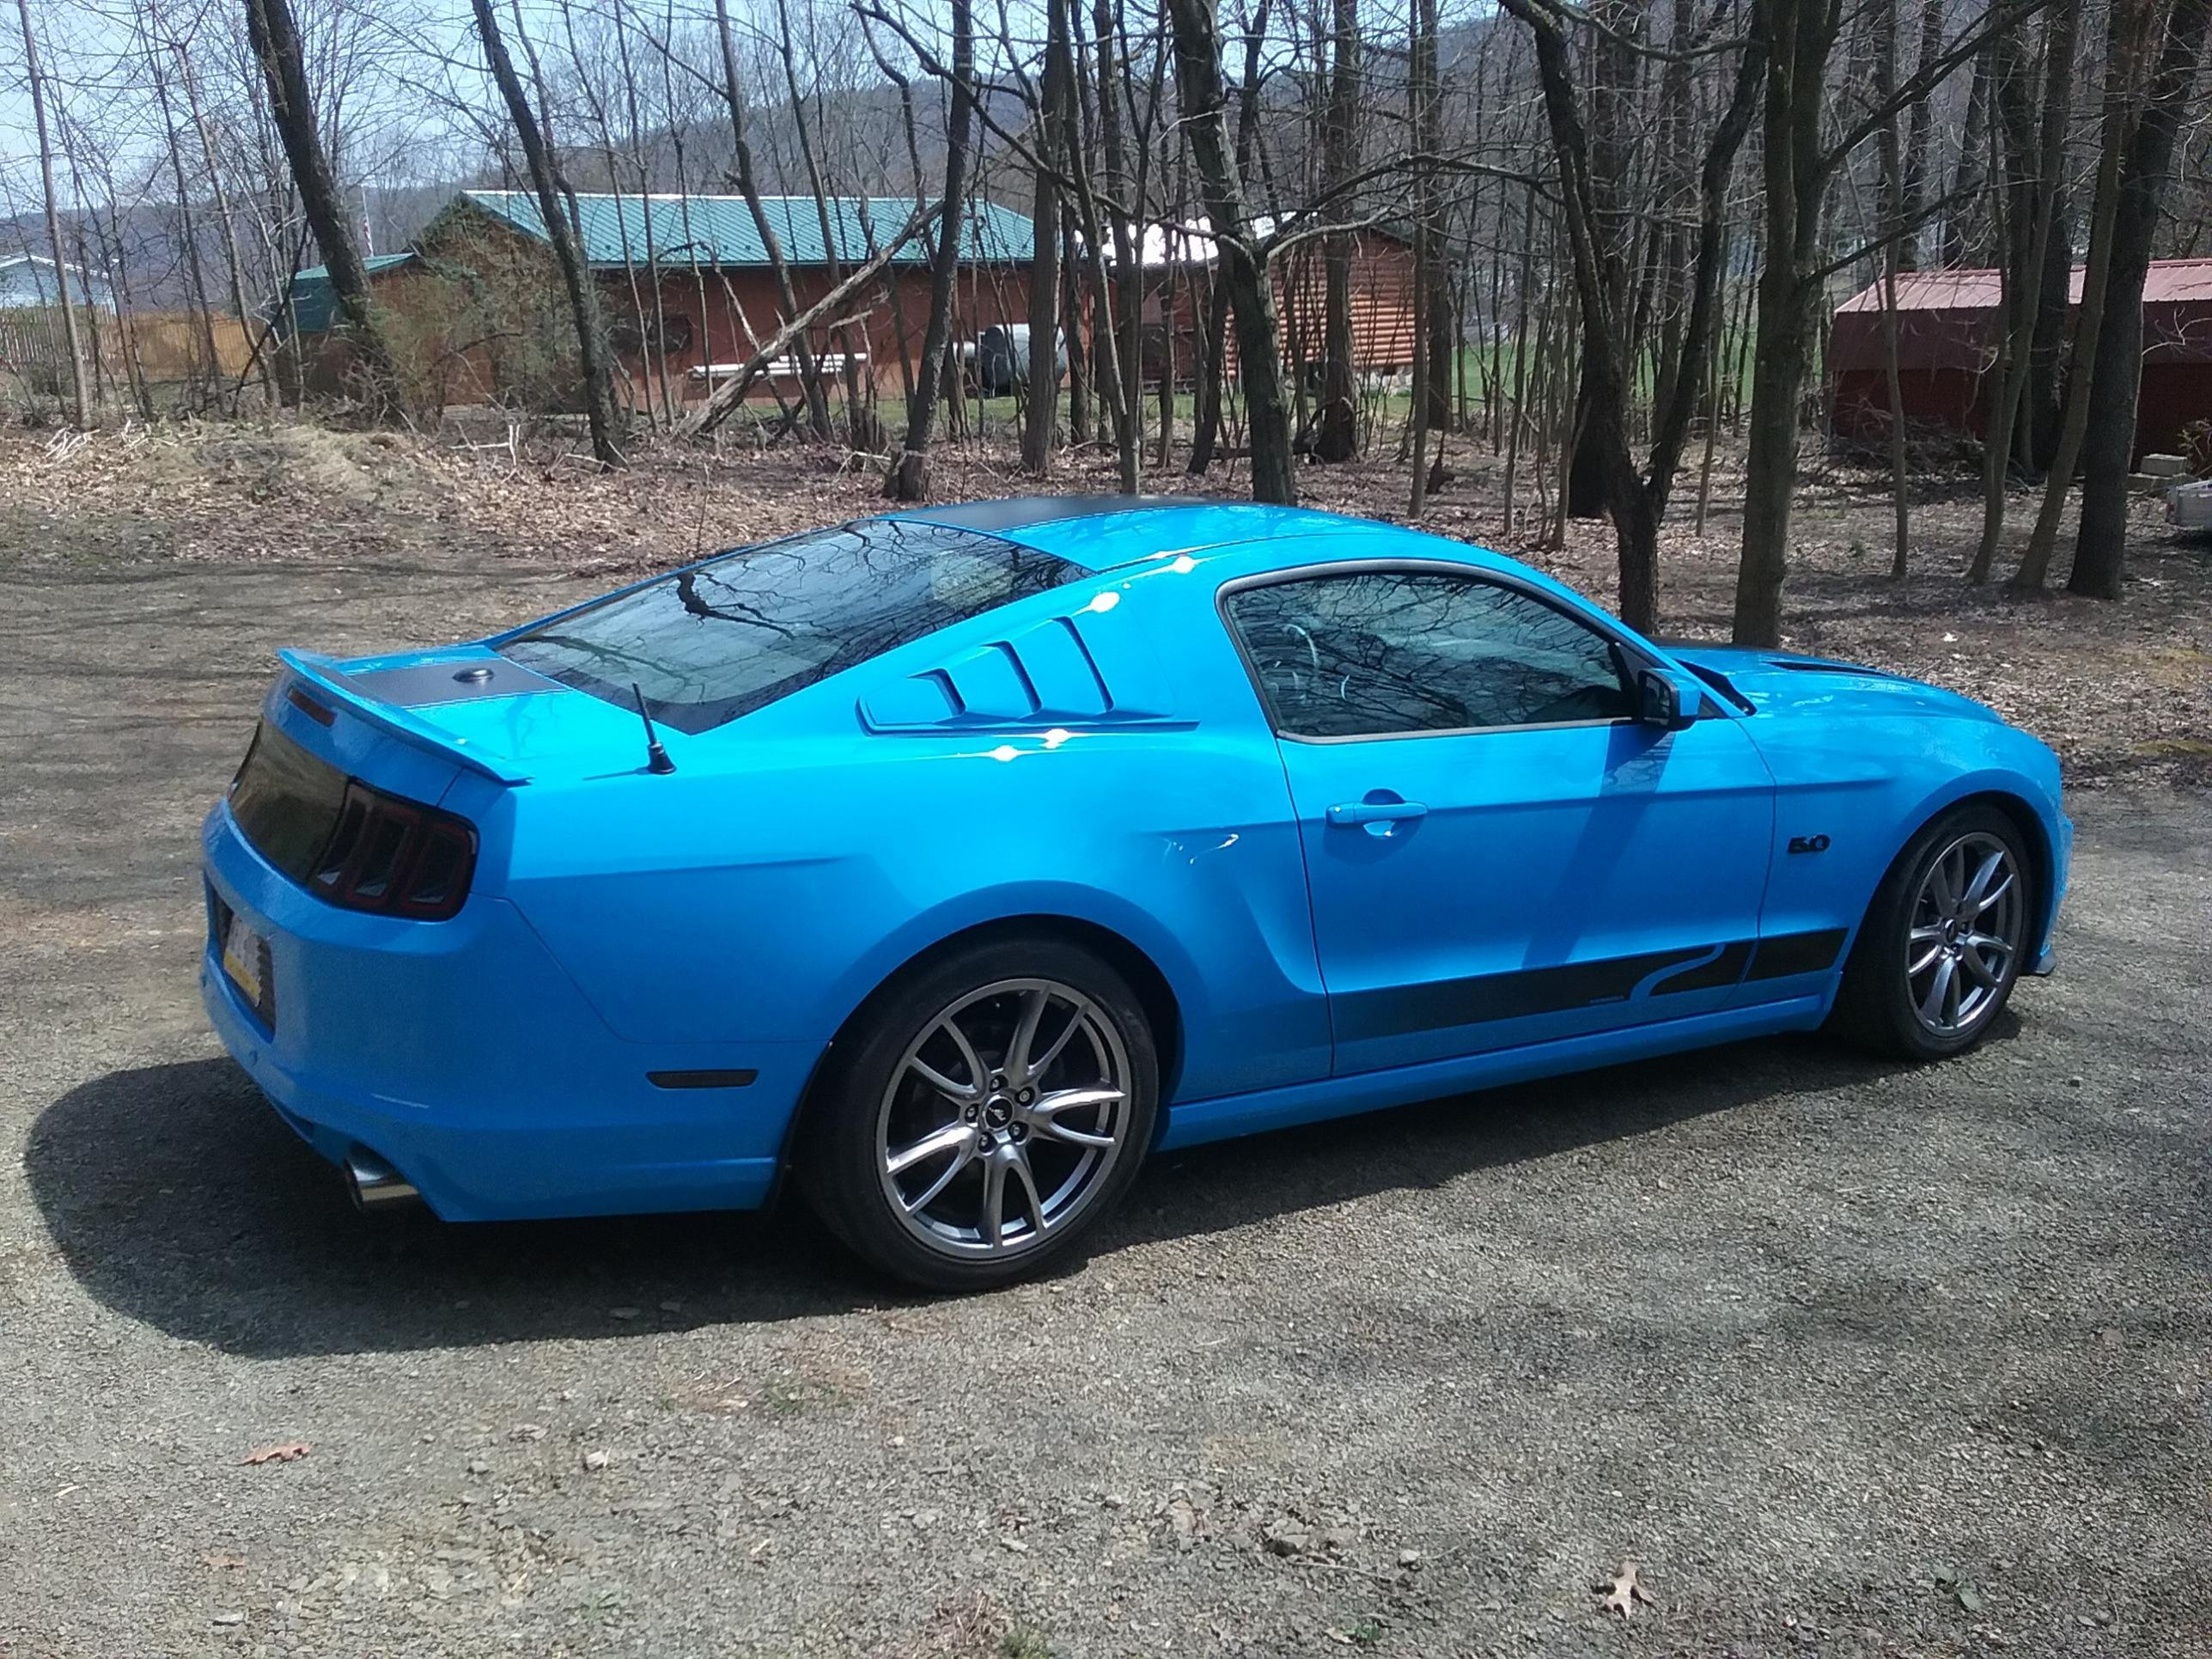 2011 2014 Mustang V8 Pic Thread Page 190 Ford